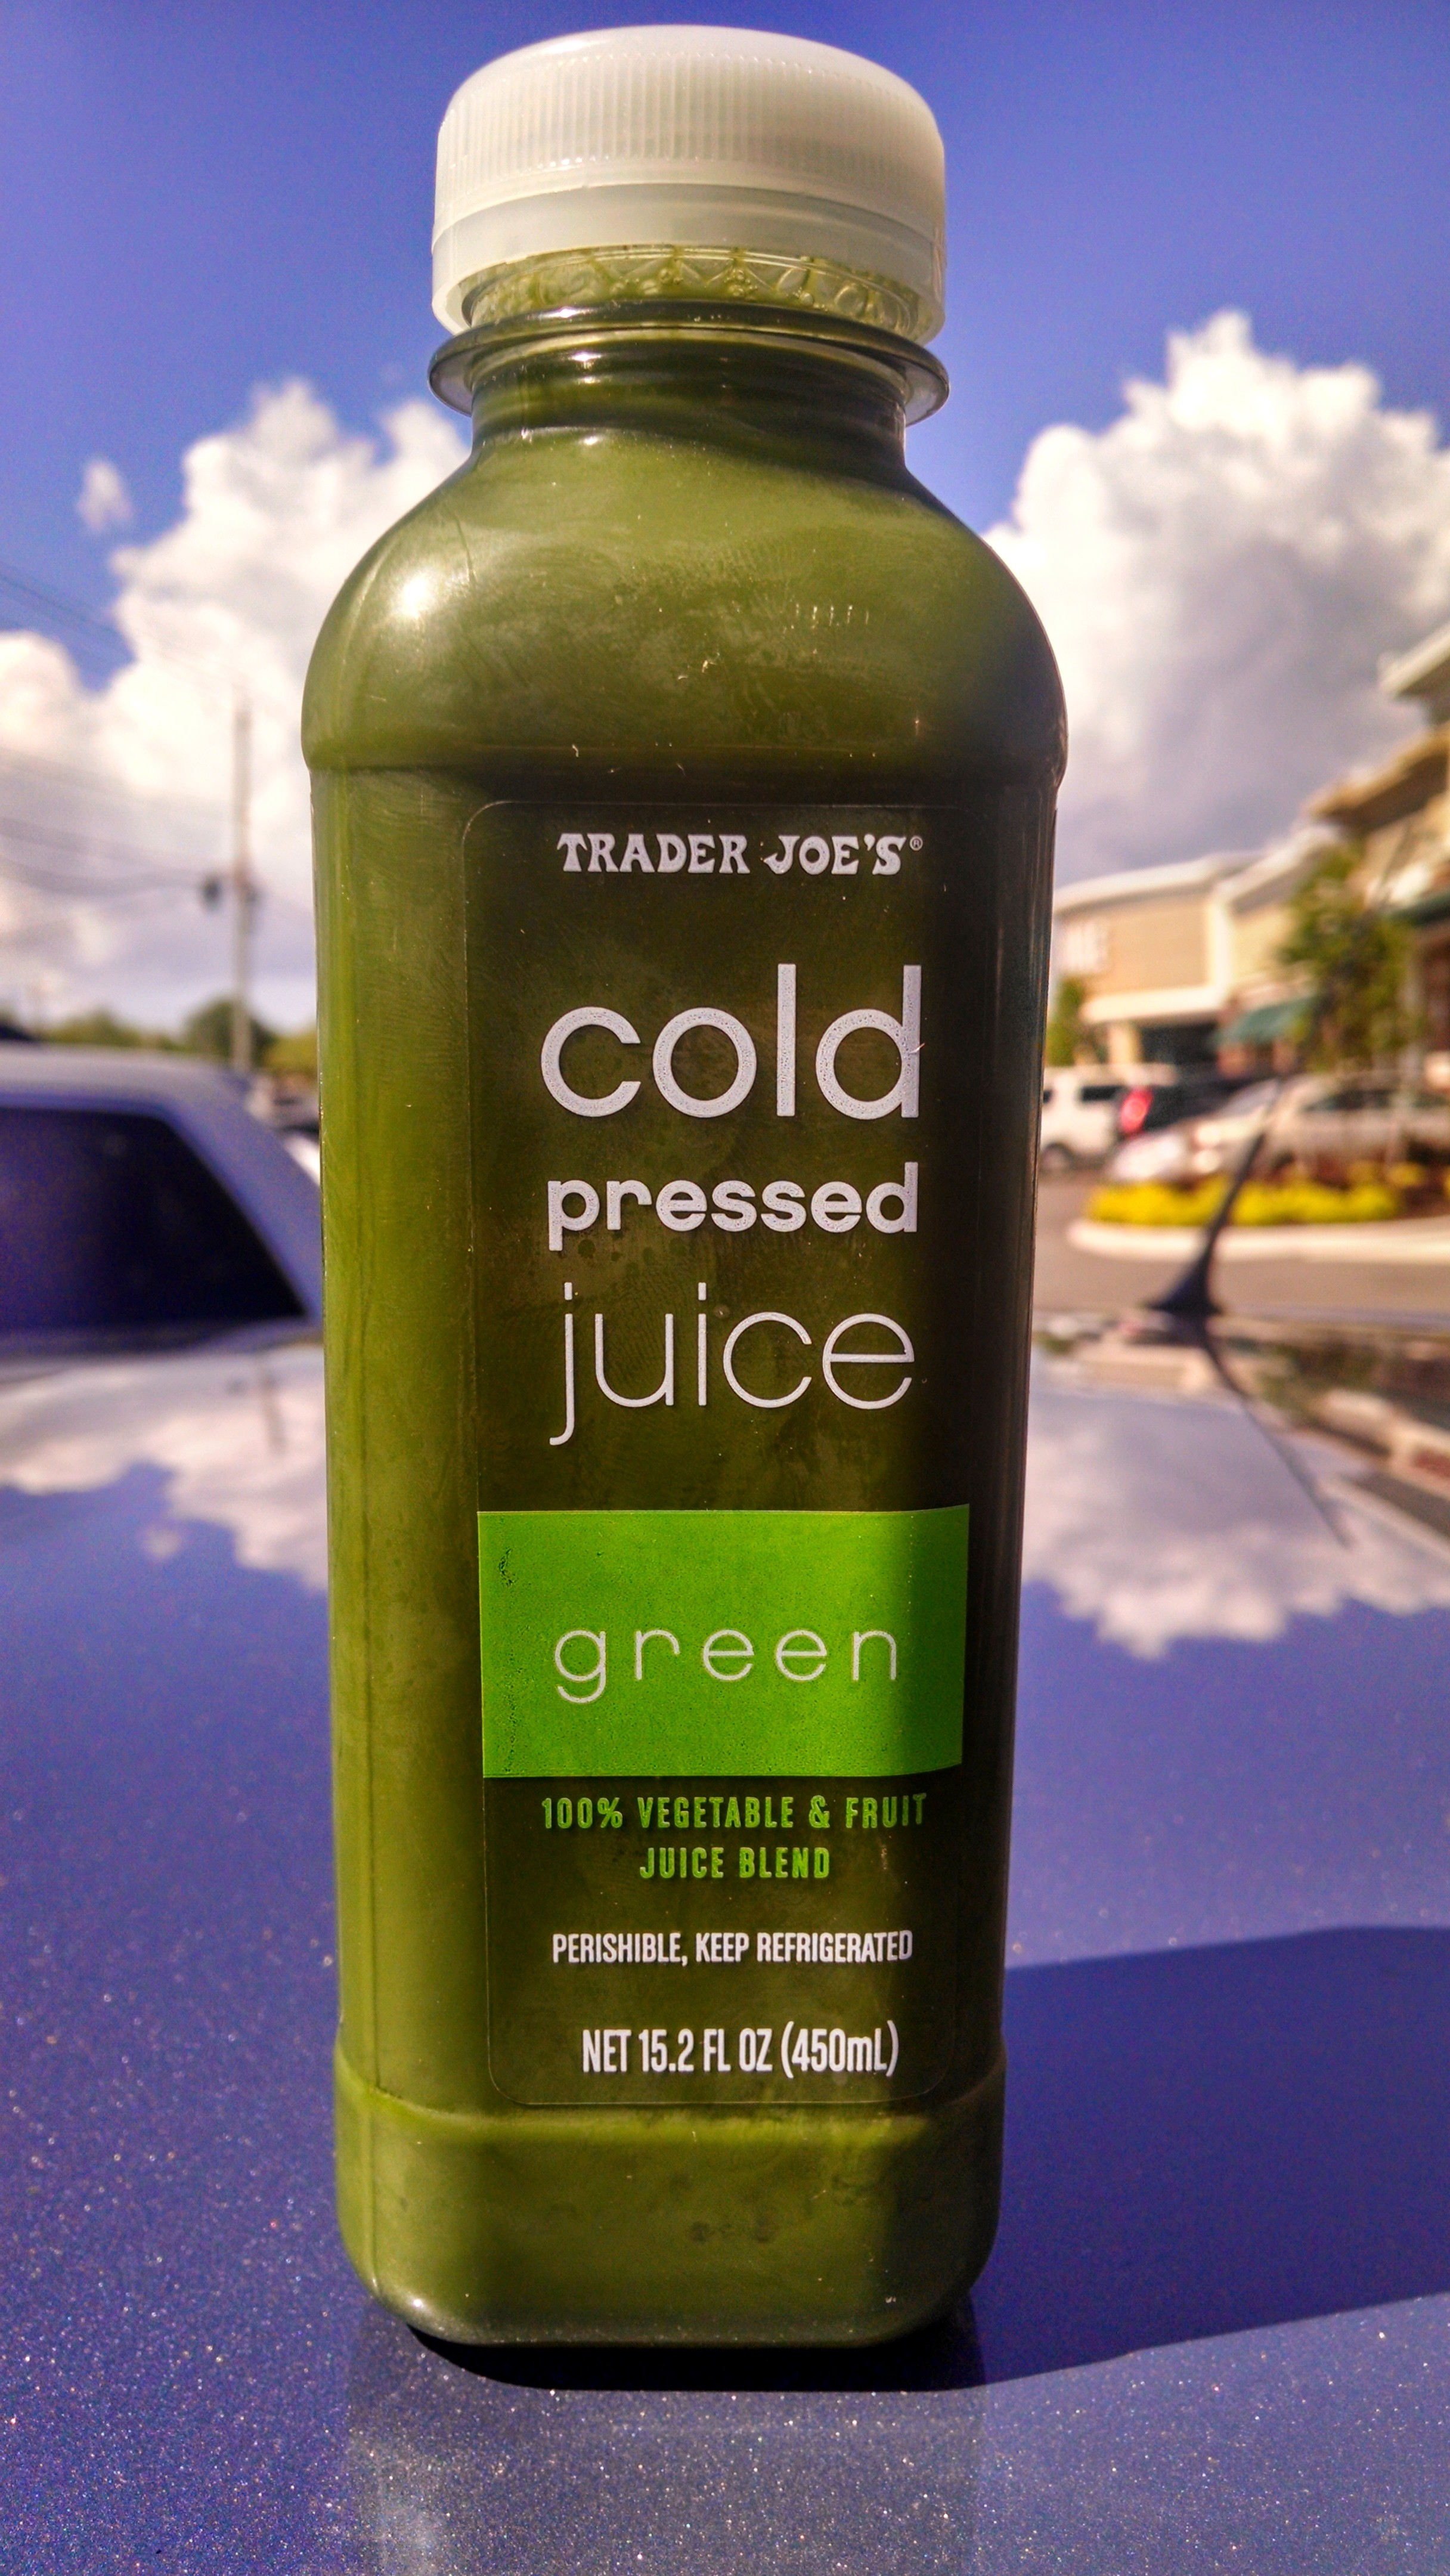 Thirsty dudes trader joes cold pressed juice green trader joes cold pressed juice green malvernweather Gallery